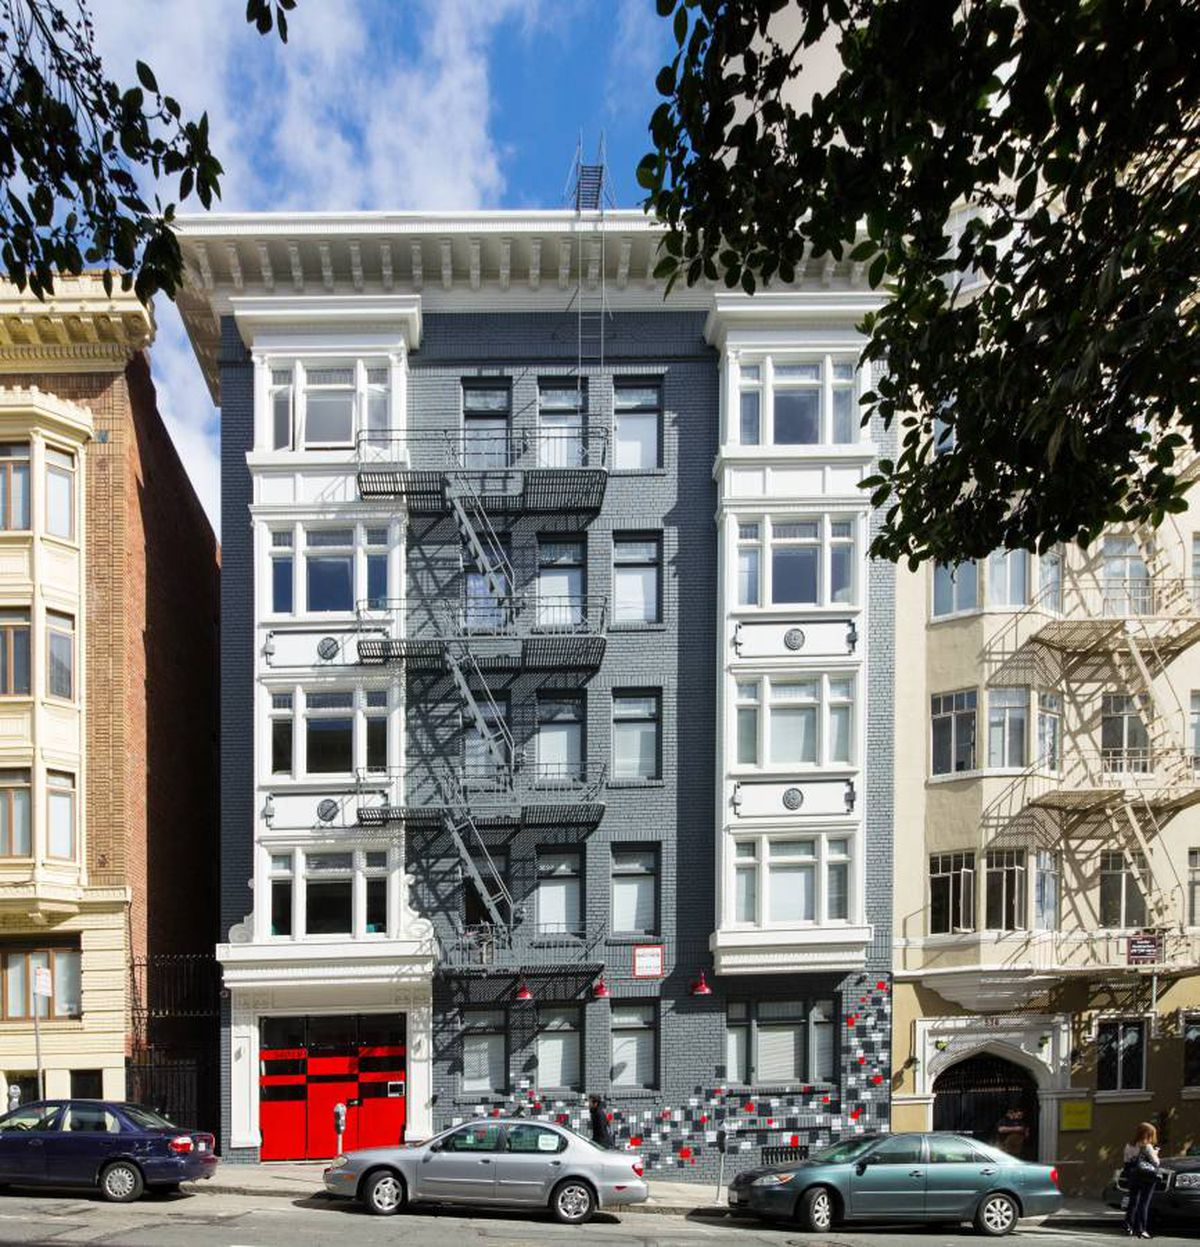 Studios For Rent San Francisco: What $3,500 Rents You In San Francisco Right Now